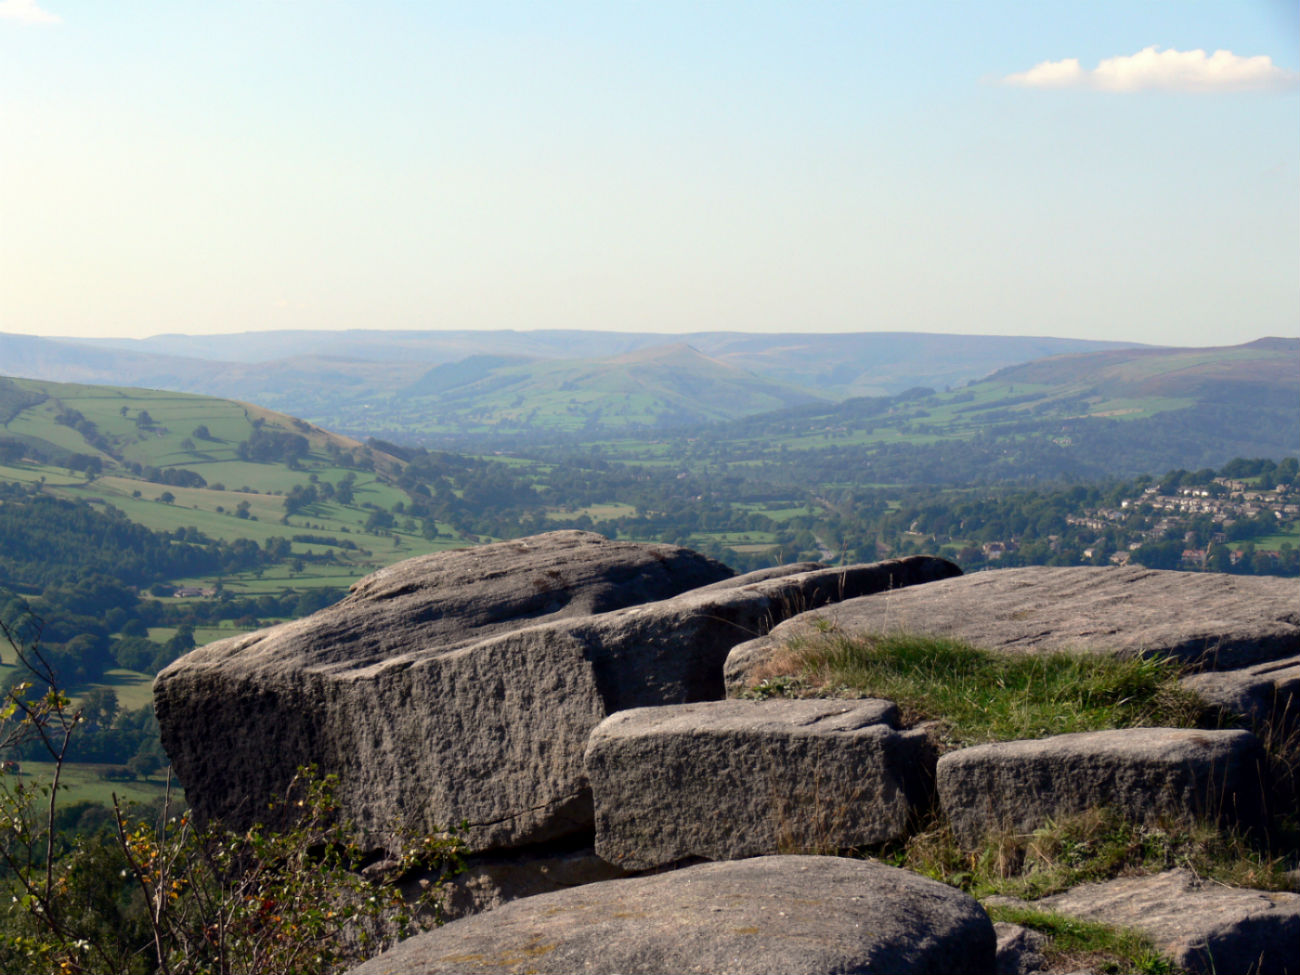 Rocks framing a view of rolling hills of the moorland